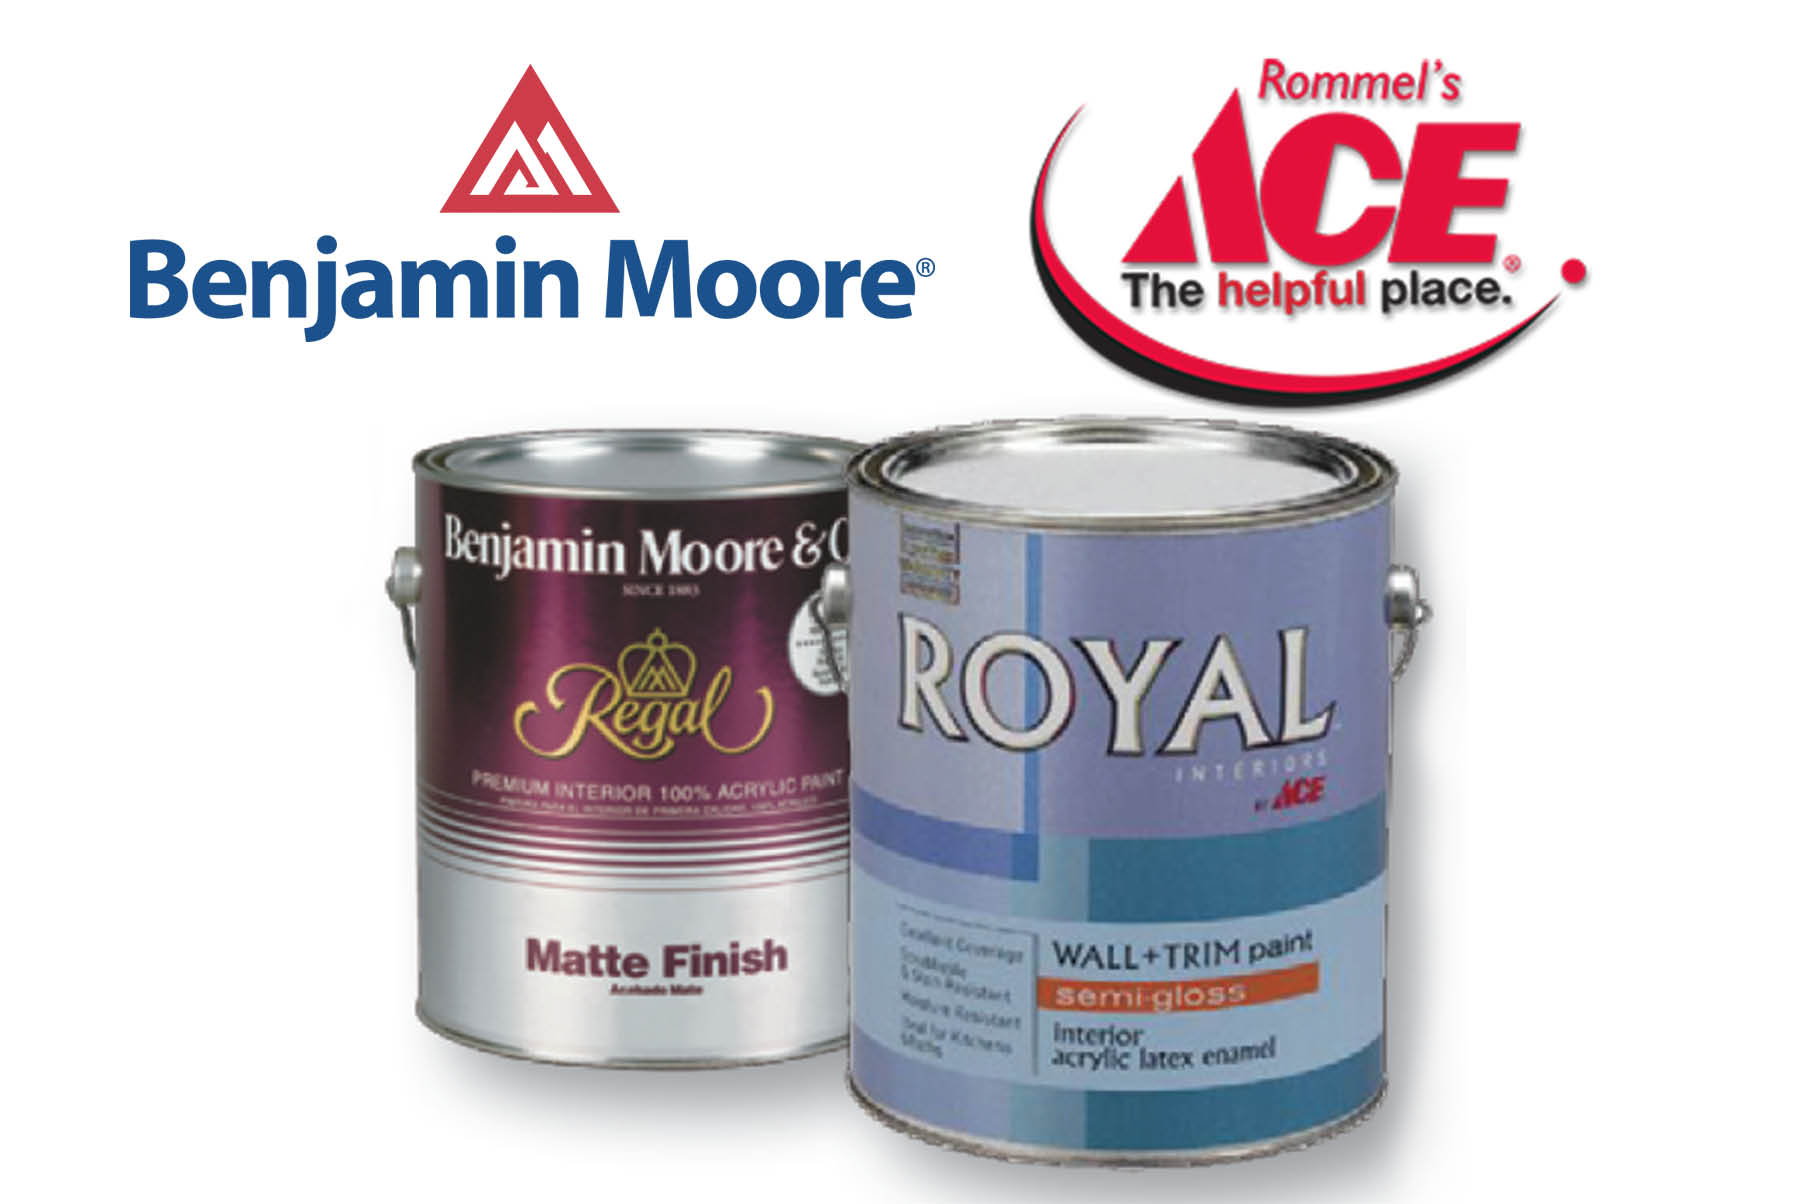 Rommel's Ace featuring Benjamin Moore and Ace Brand Paint